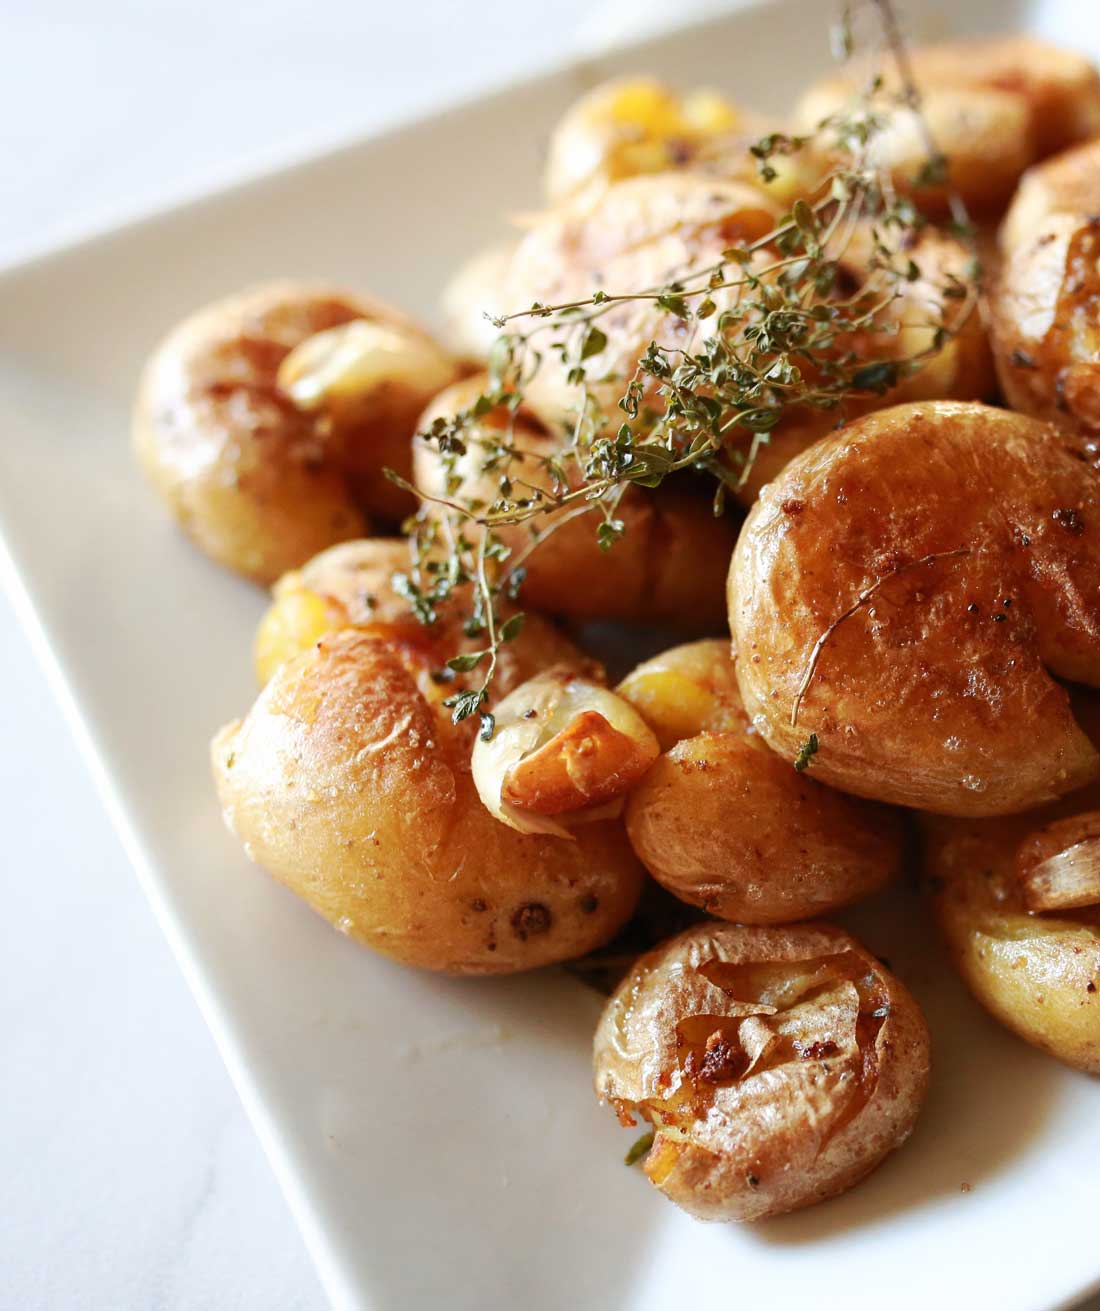 Smashed Potatoes: Marble potatoes tossed with garlic and herbs then roasted until just soft. Slightly smashed with a fork and lightly crisped in hot oil.